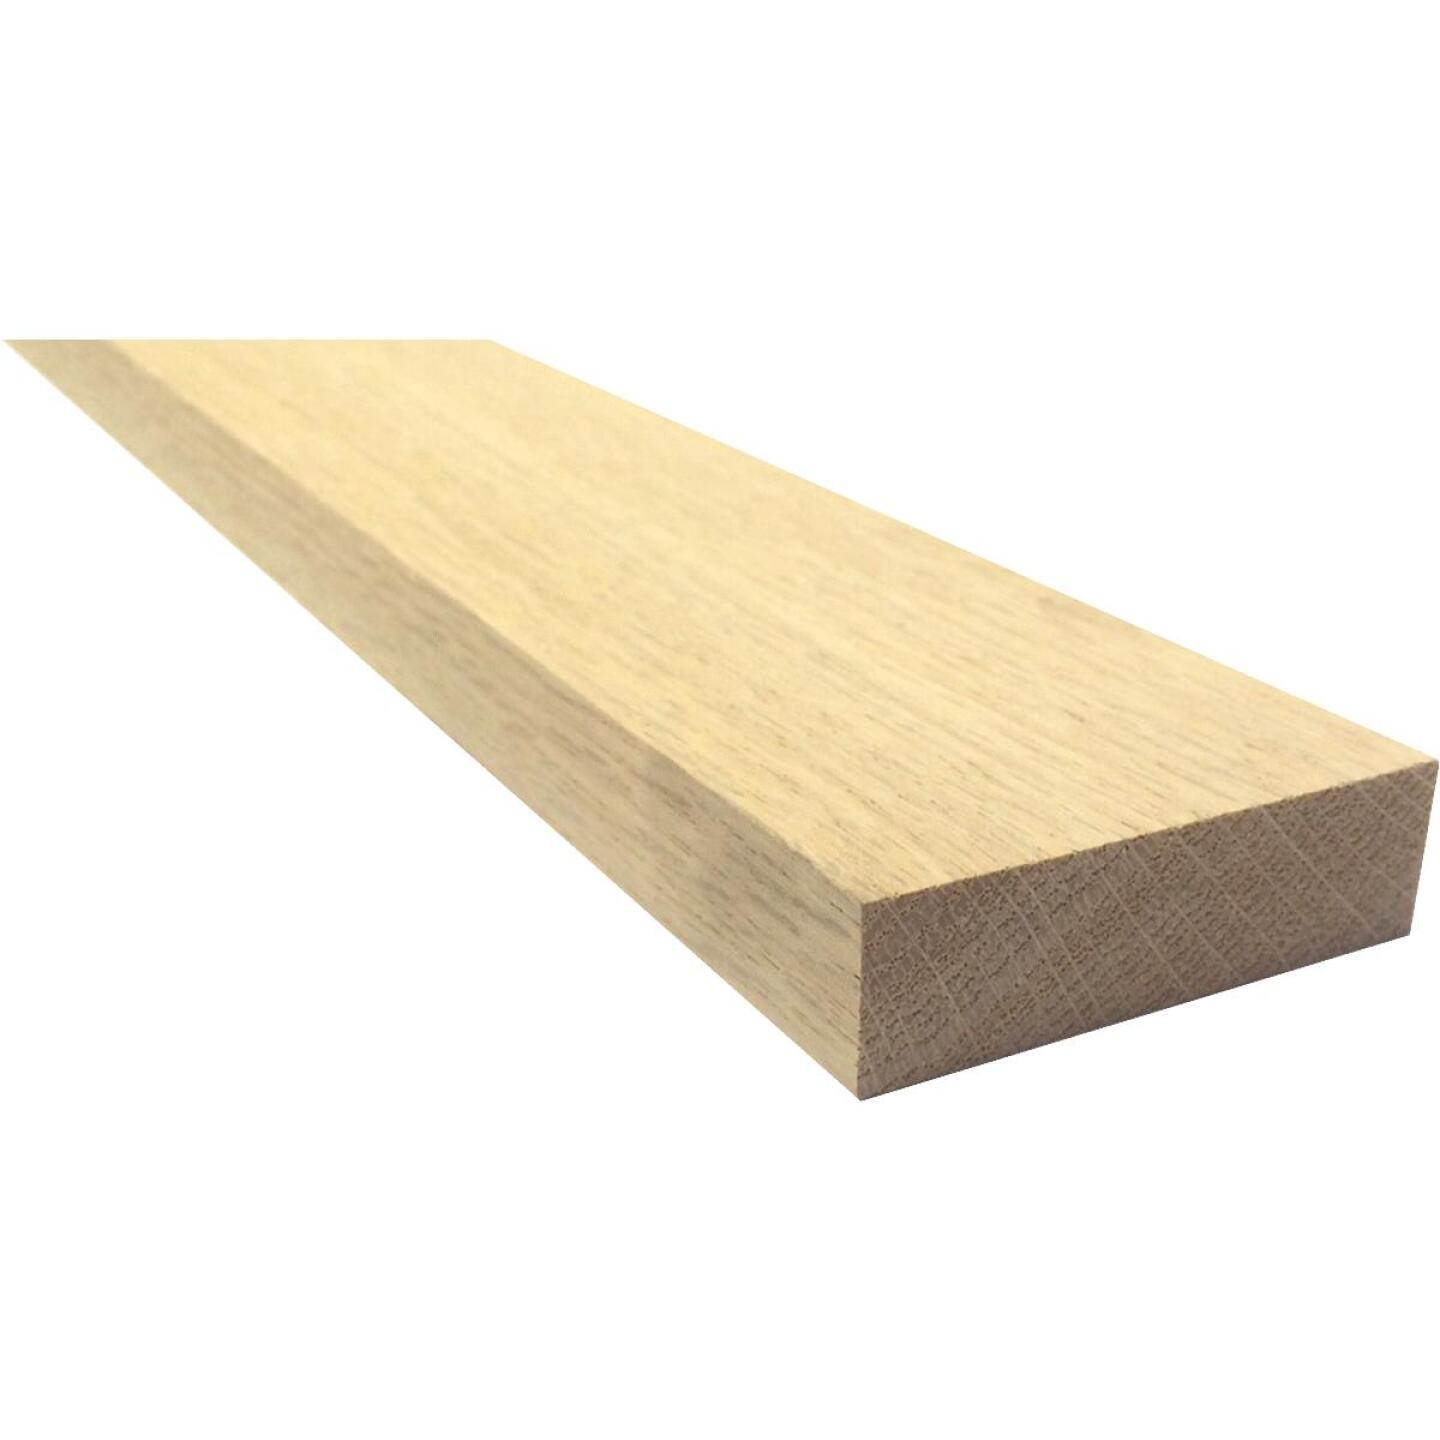 Waddell 1 In. x 3 In. x 8 Ft. Red Oak Board Image 1